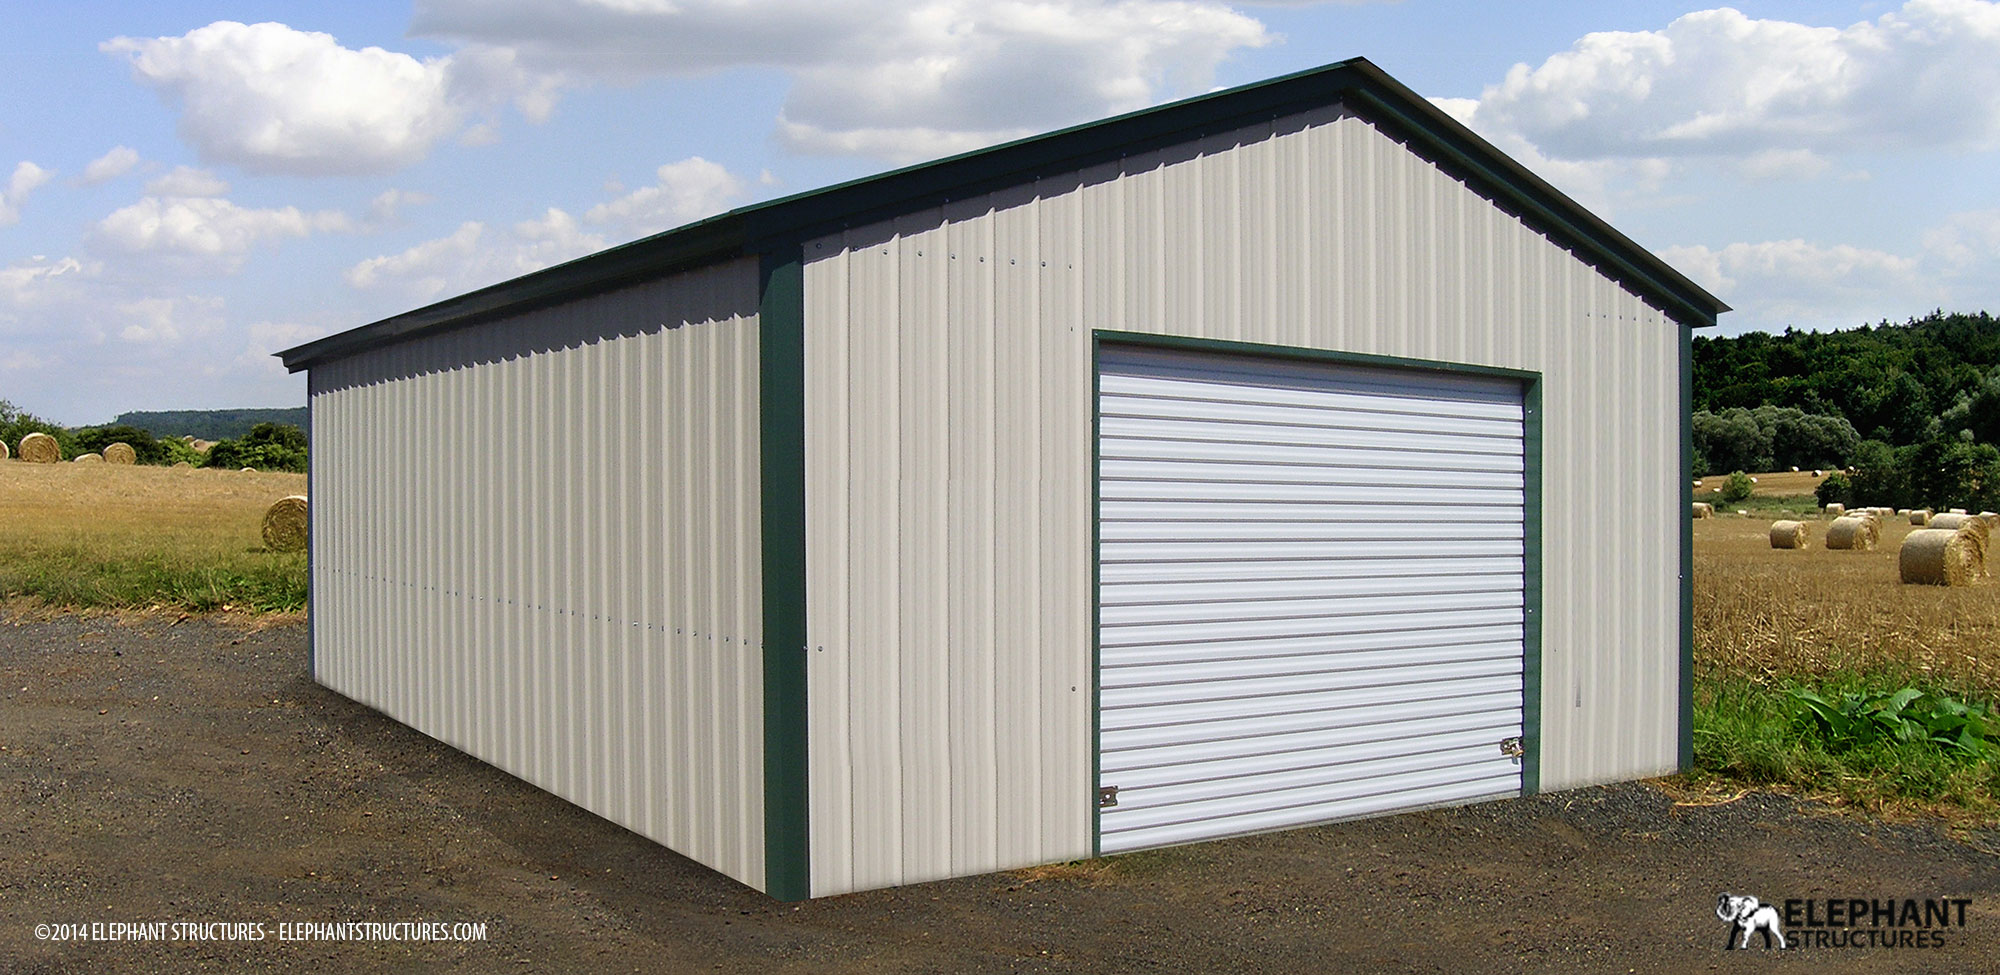 Garage Storage Buildings Metal Buildings Garages Carports Barns Online Elephant Structures